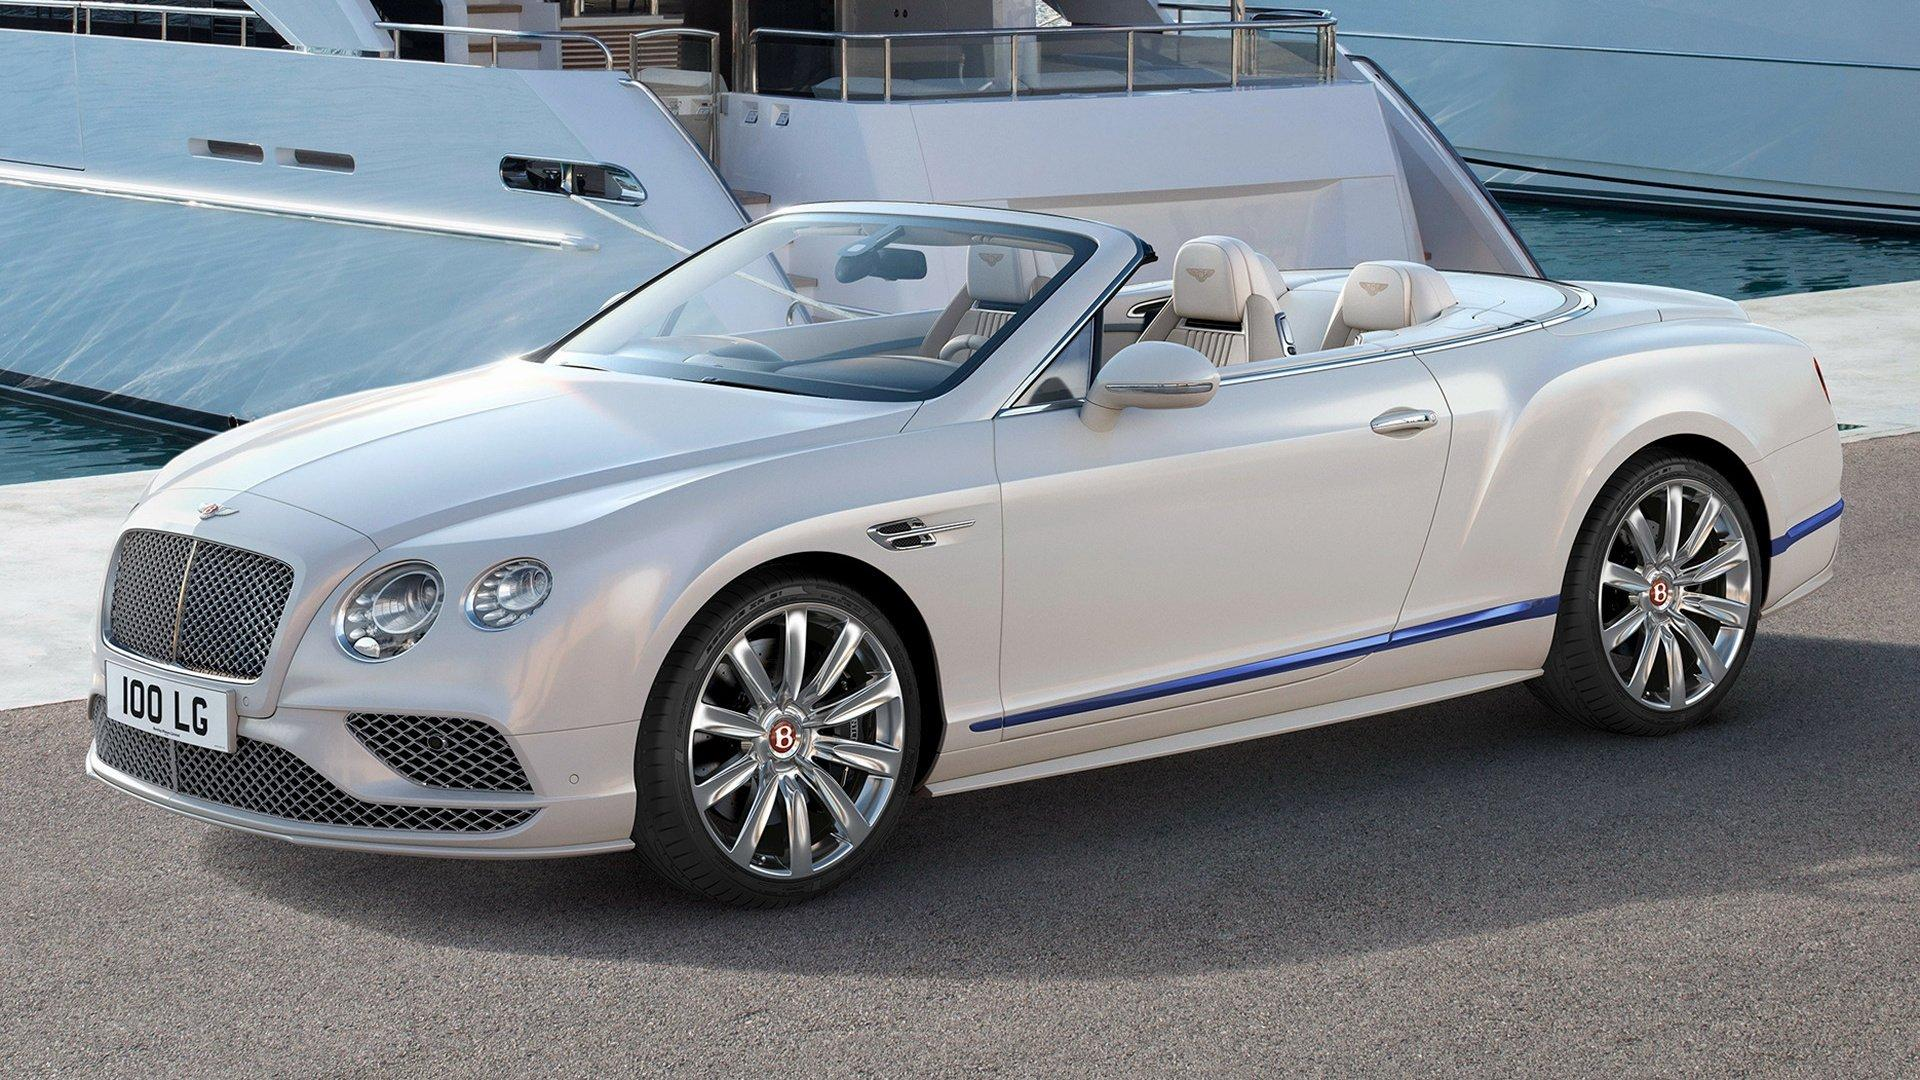 2017 Bentley Continental GT V8 Convertible Galene Edition by